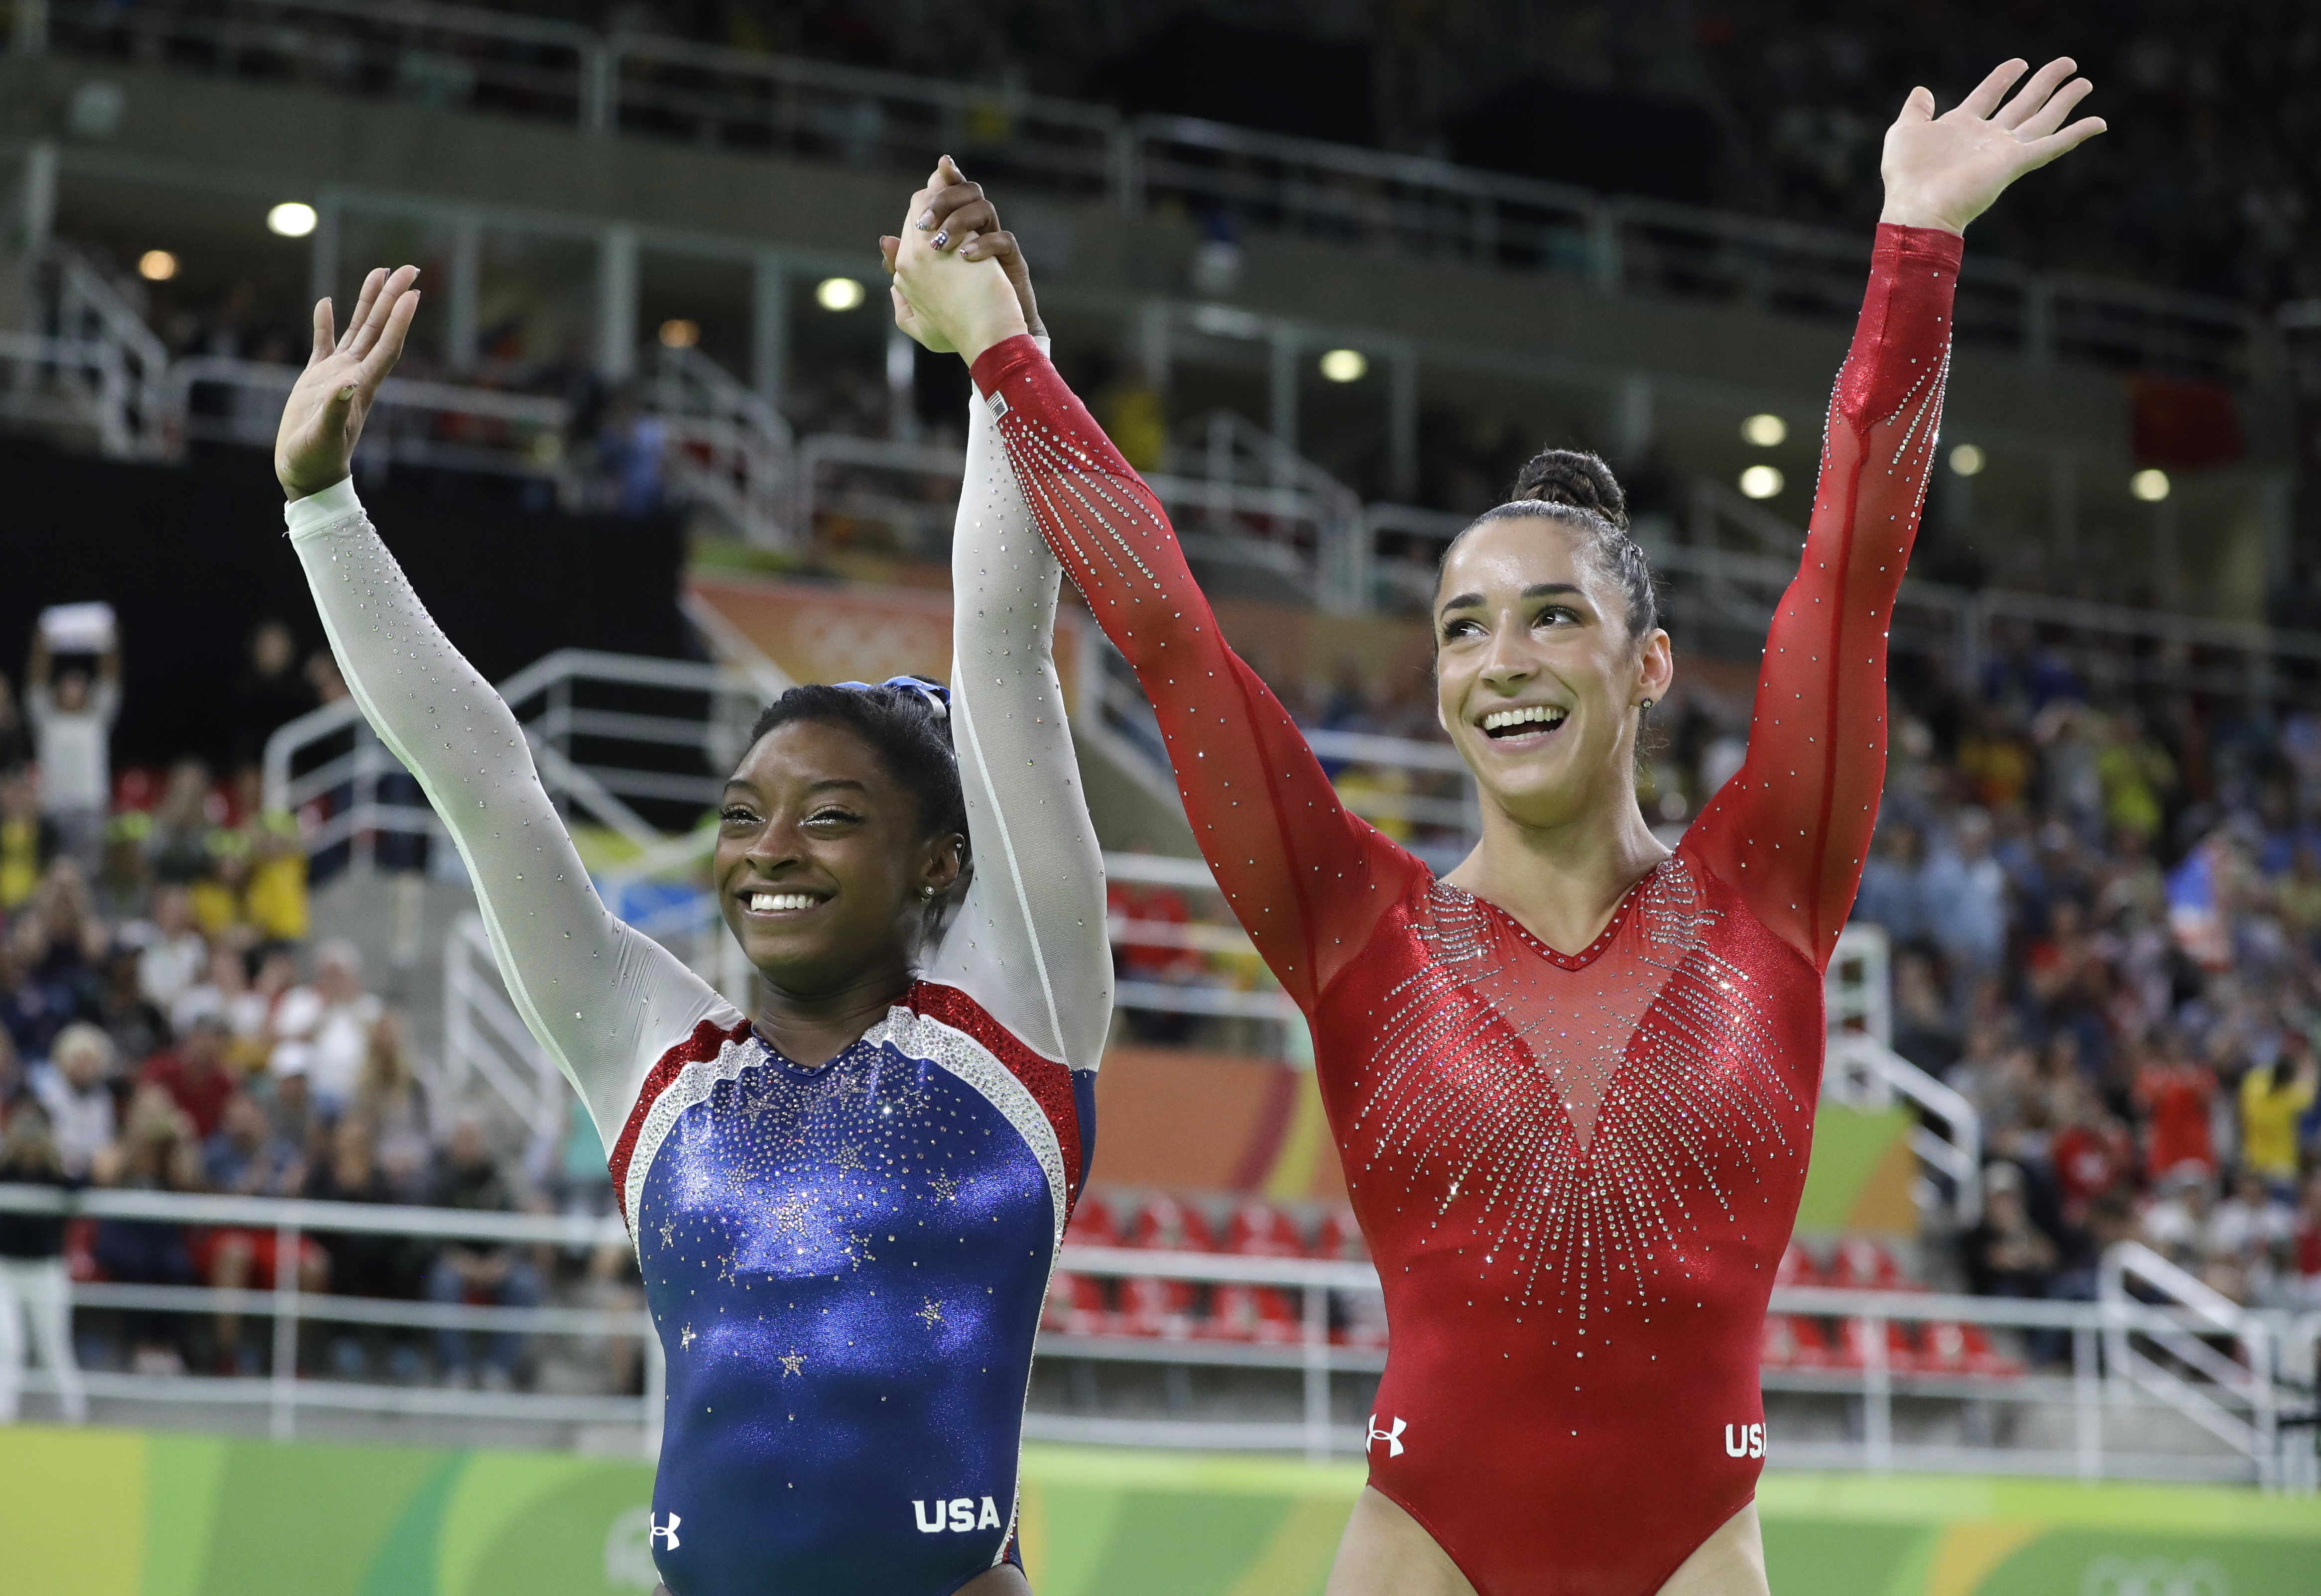 Simone Biles Responds to NBC Anchor Who Made Controversial Statement on Adopted Parents